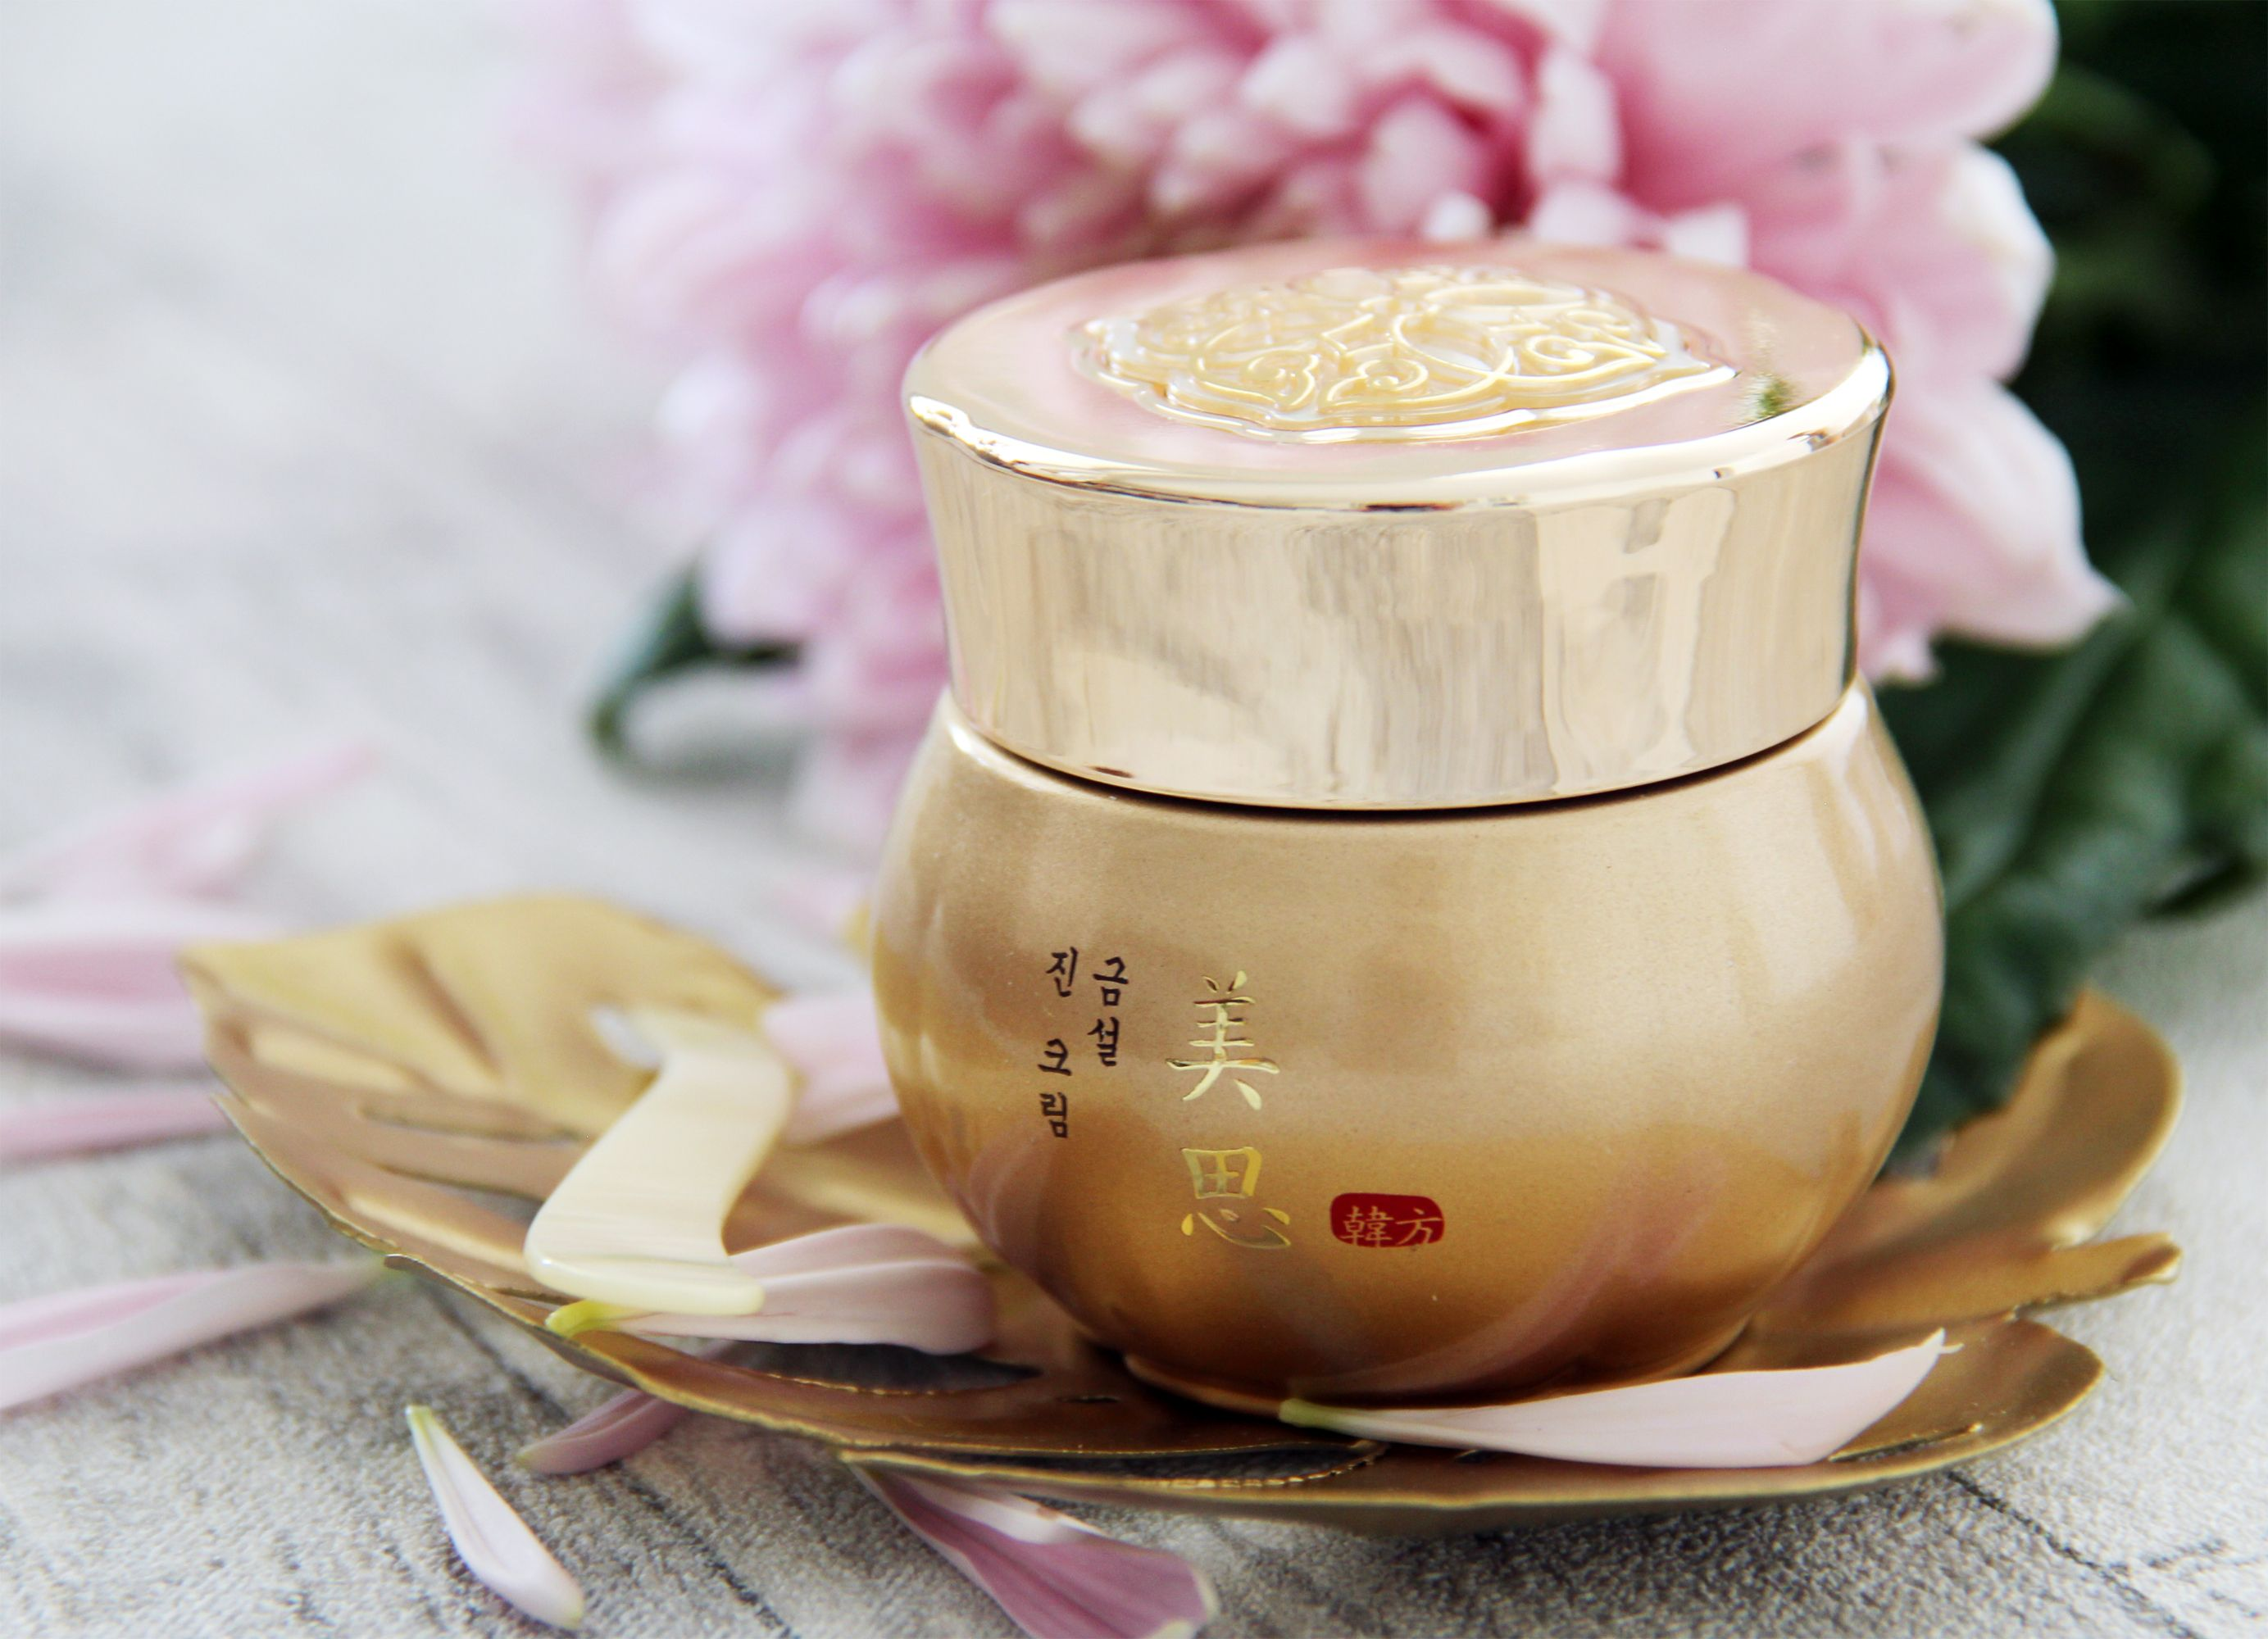 MISA Geum Sul Rejuvenating Cream